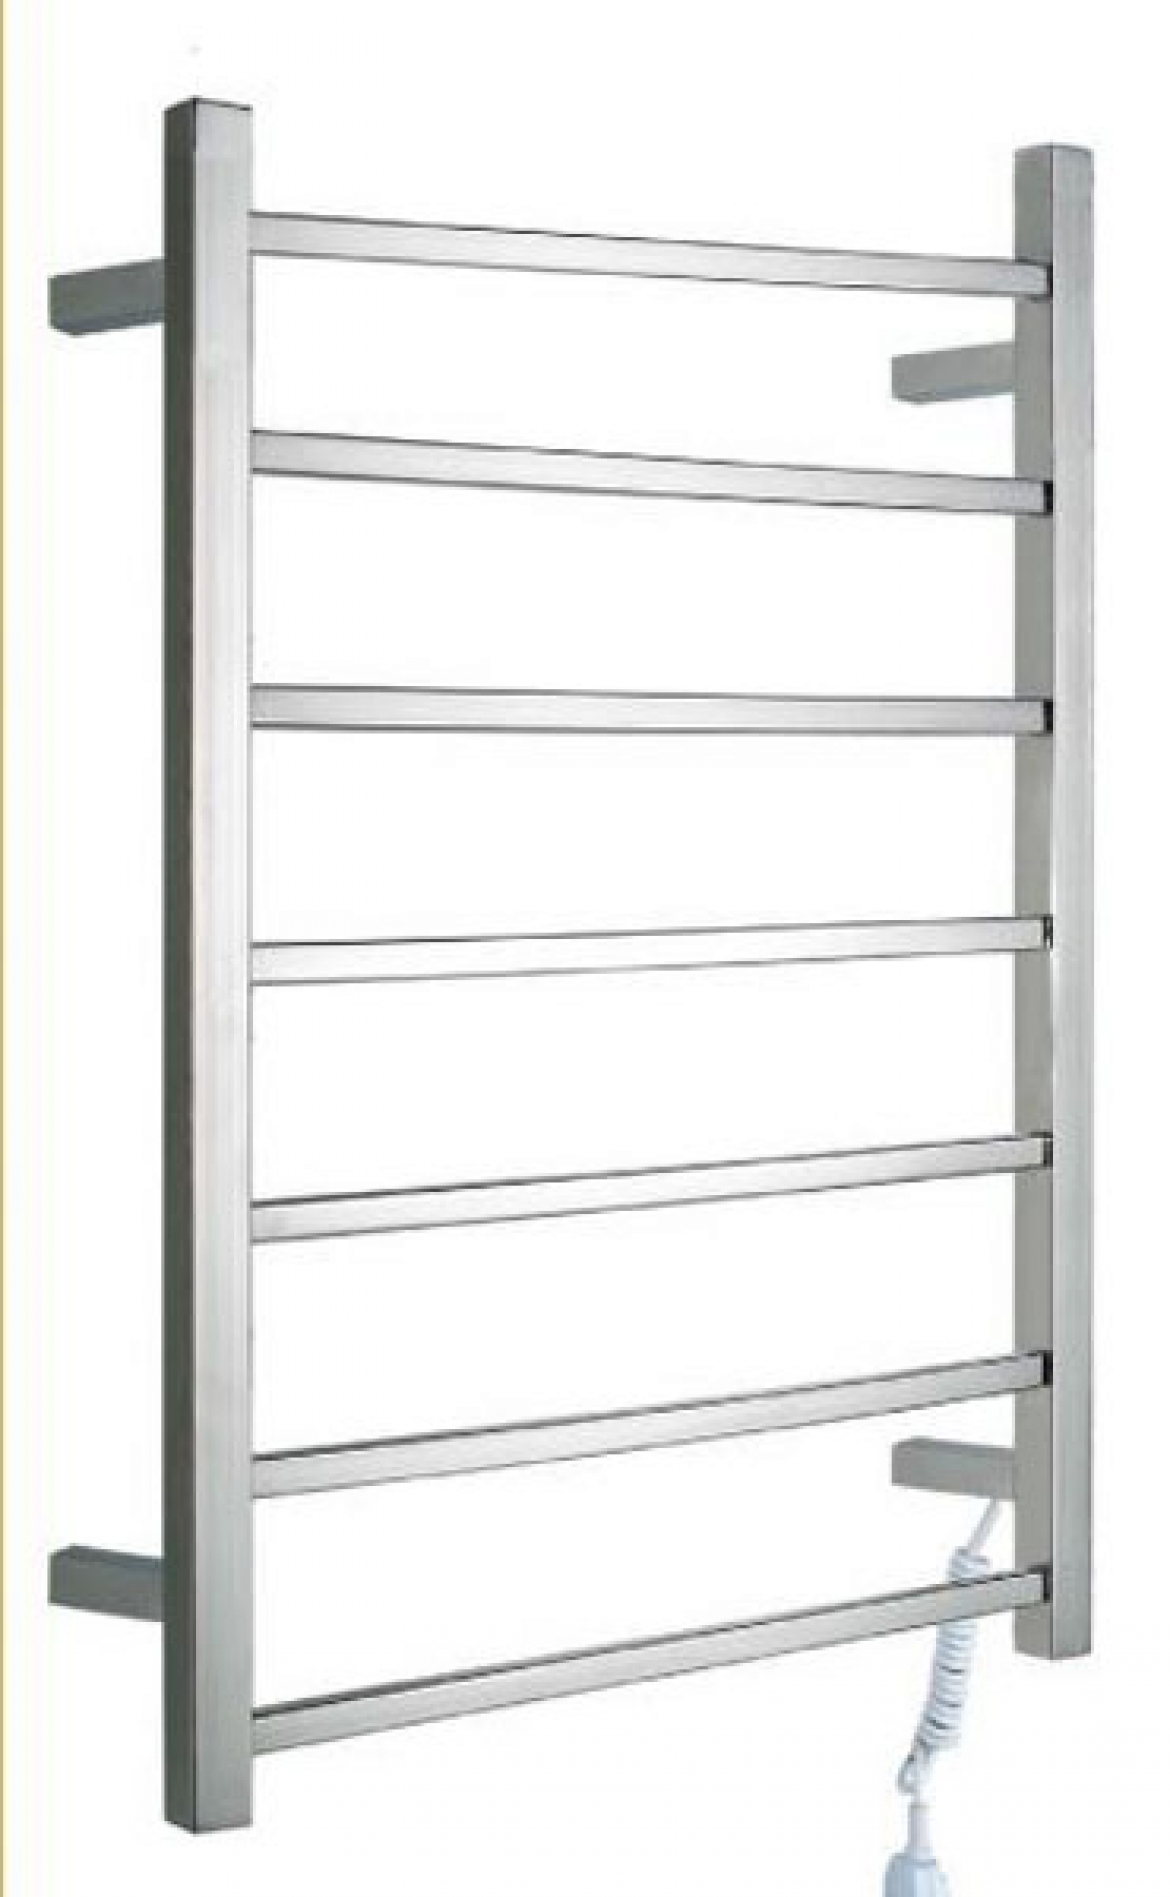 Heated towel rail[XY-G-1S]